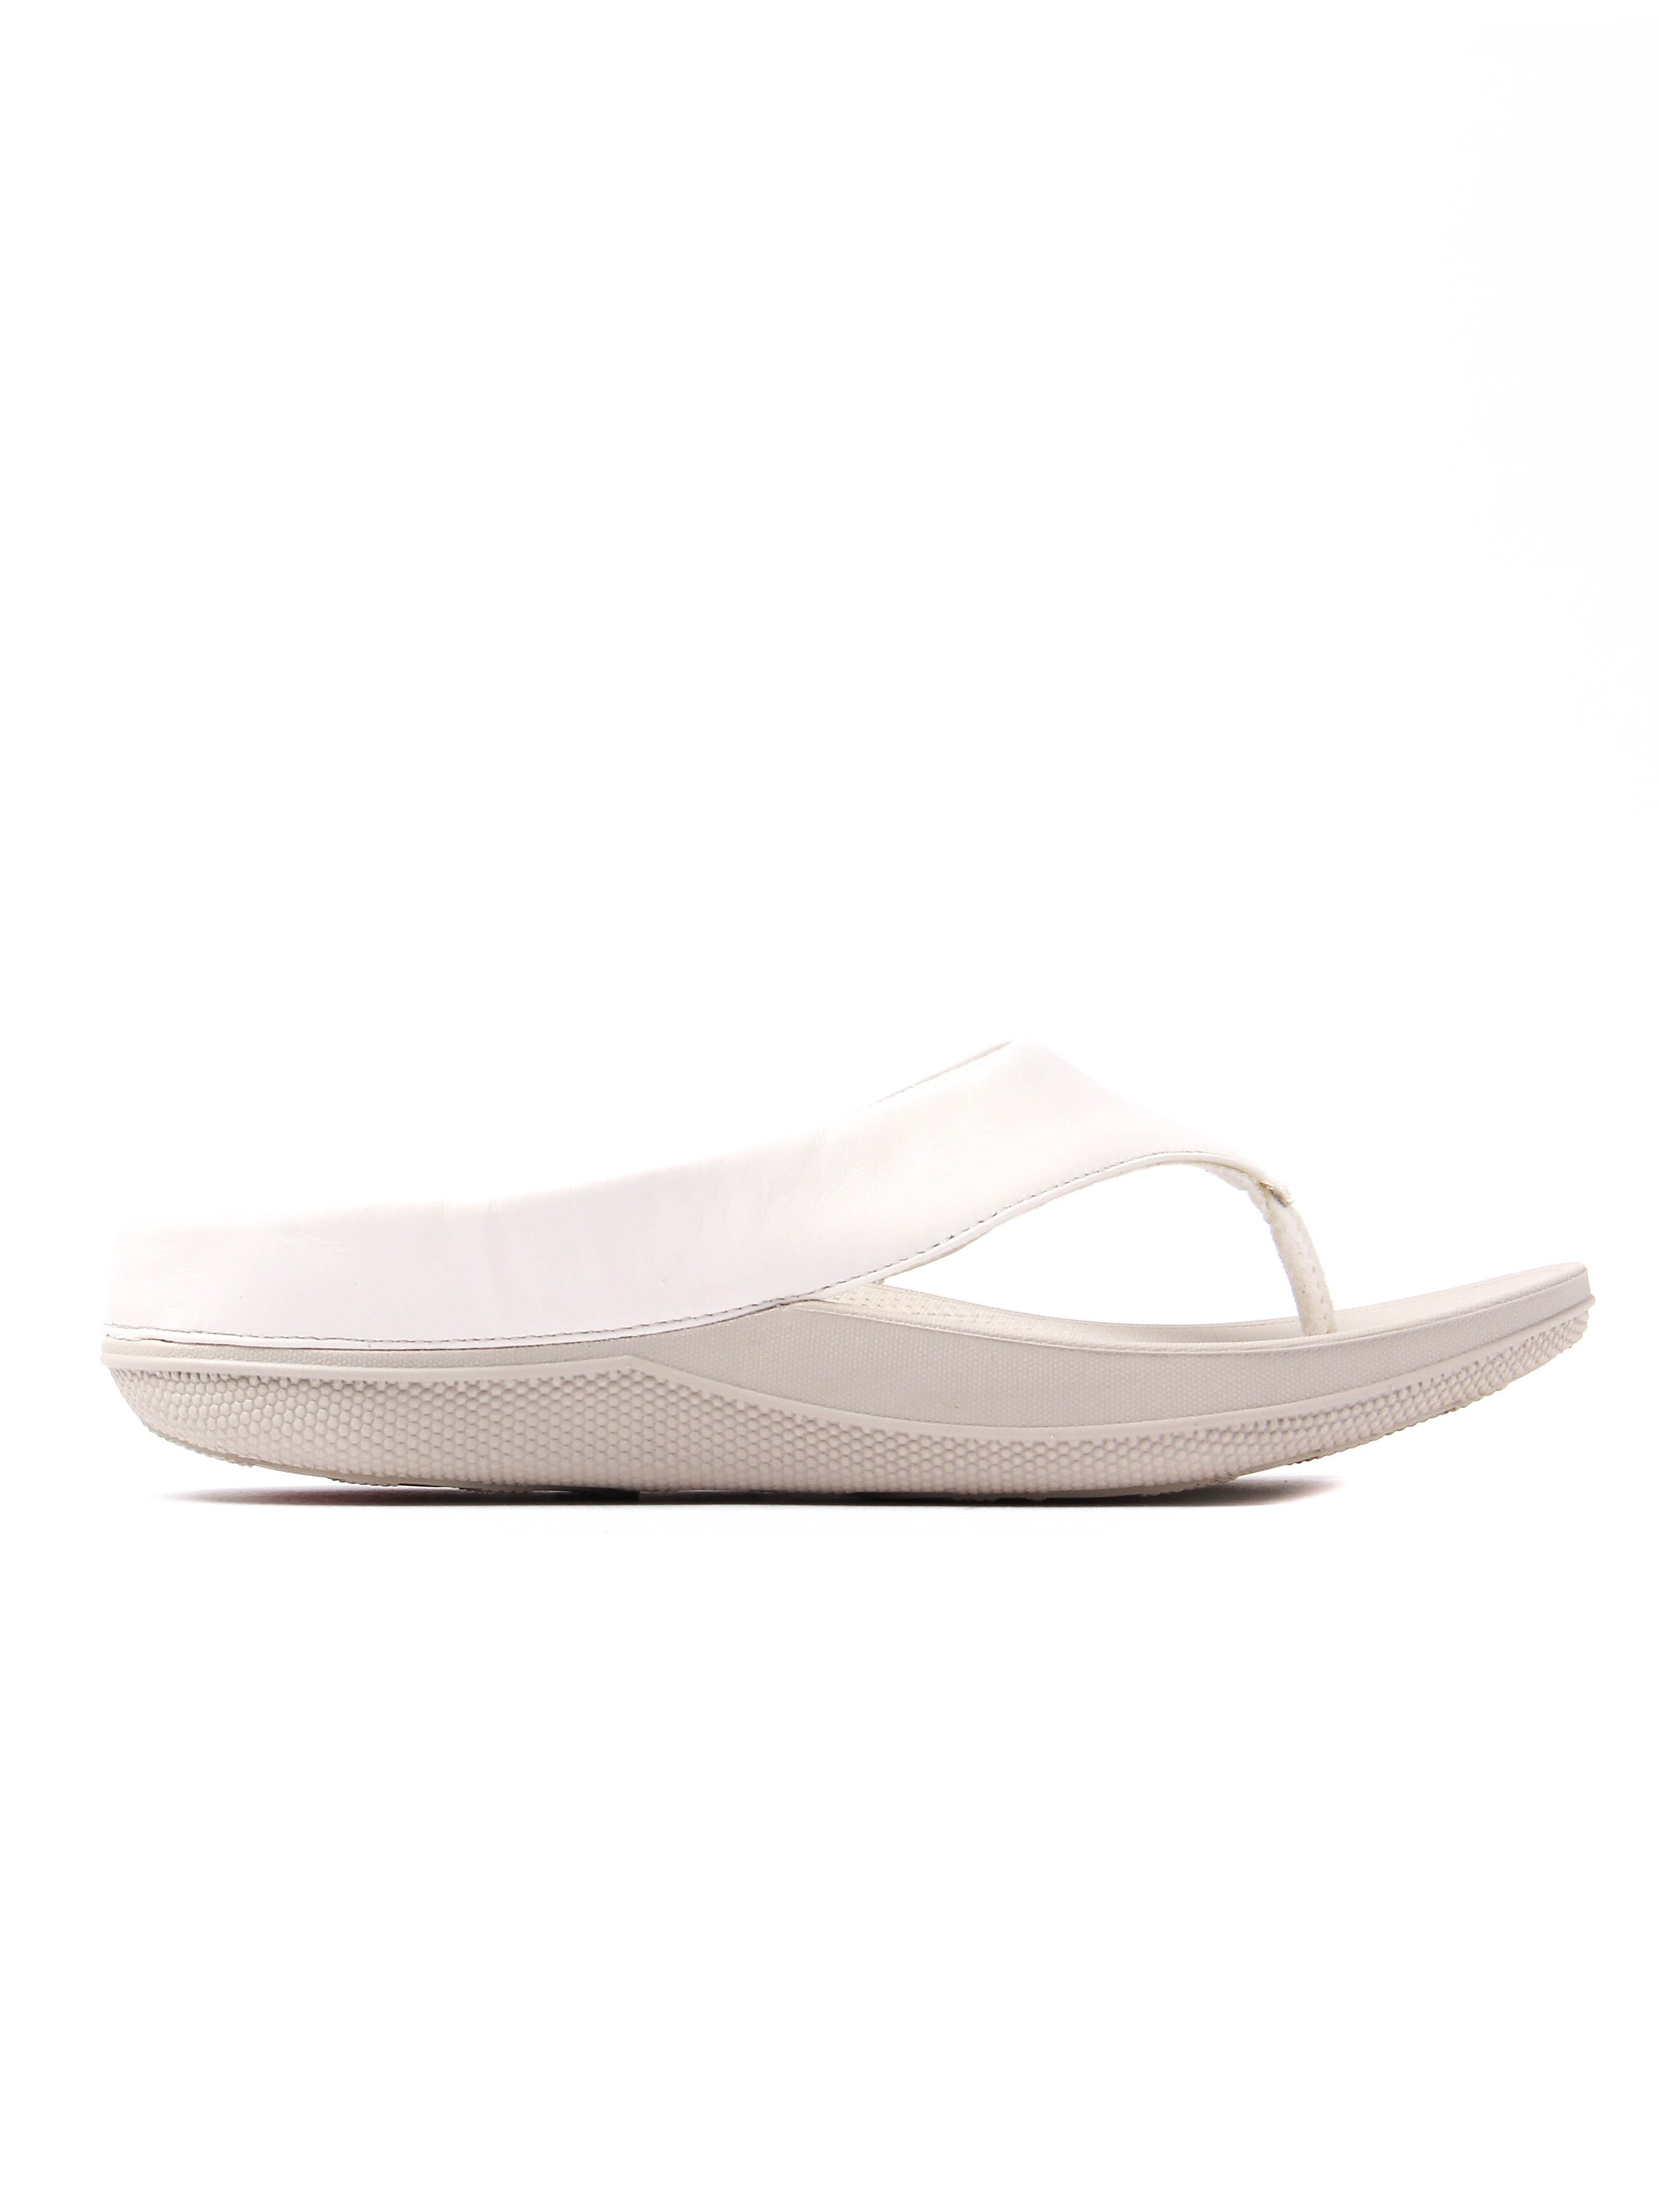 FitFlop Women's Superlight Ringer Sandals - Urban White Leather